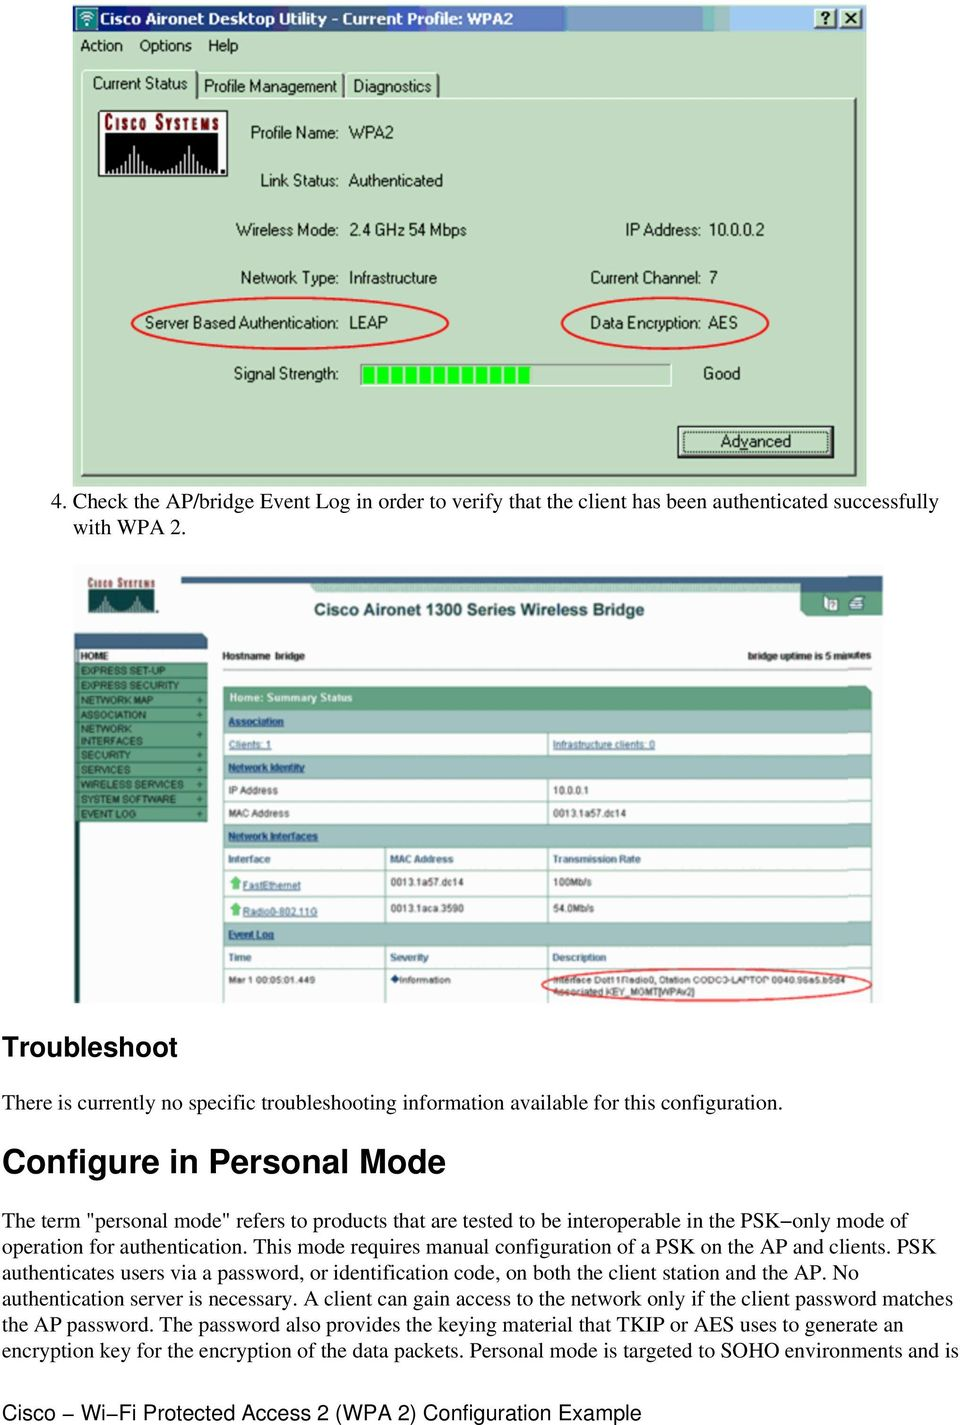 "Configure in Personal Mode The term ""personal mode"" refers to products that are tested to be interoperable in the PSK only mode of operation for authentication."